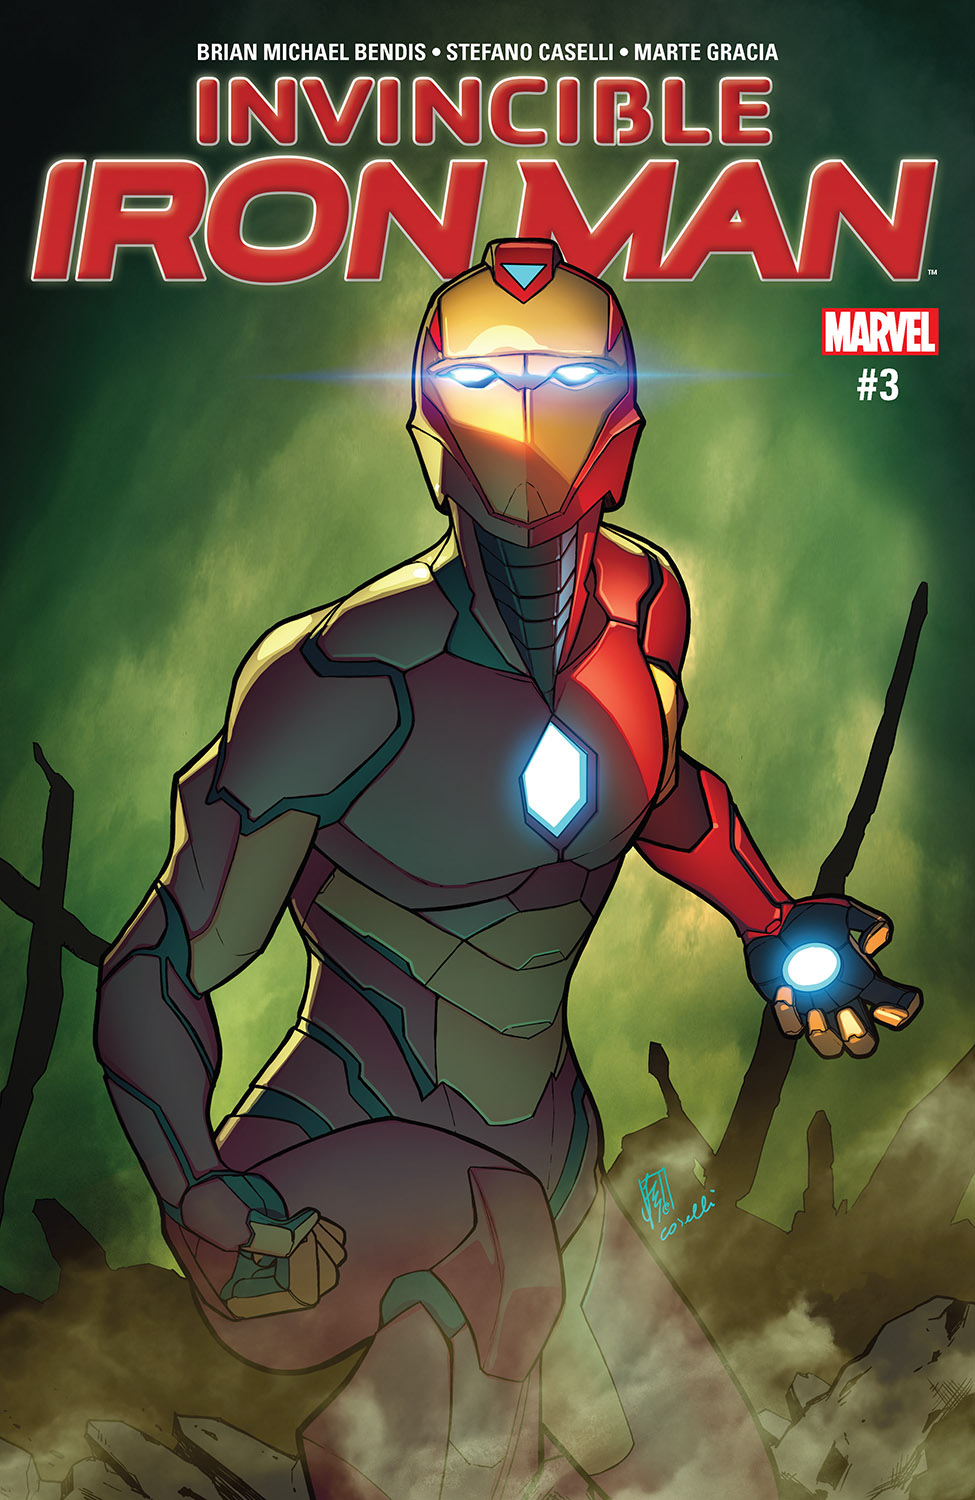 Invincible Iron Man (2016) #3